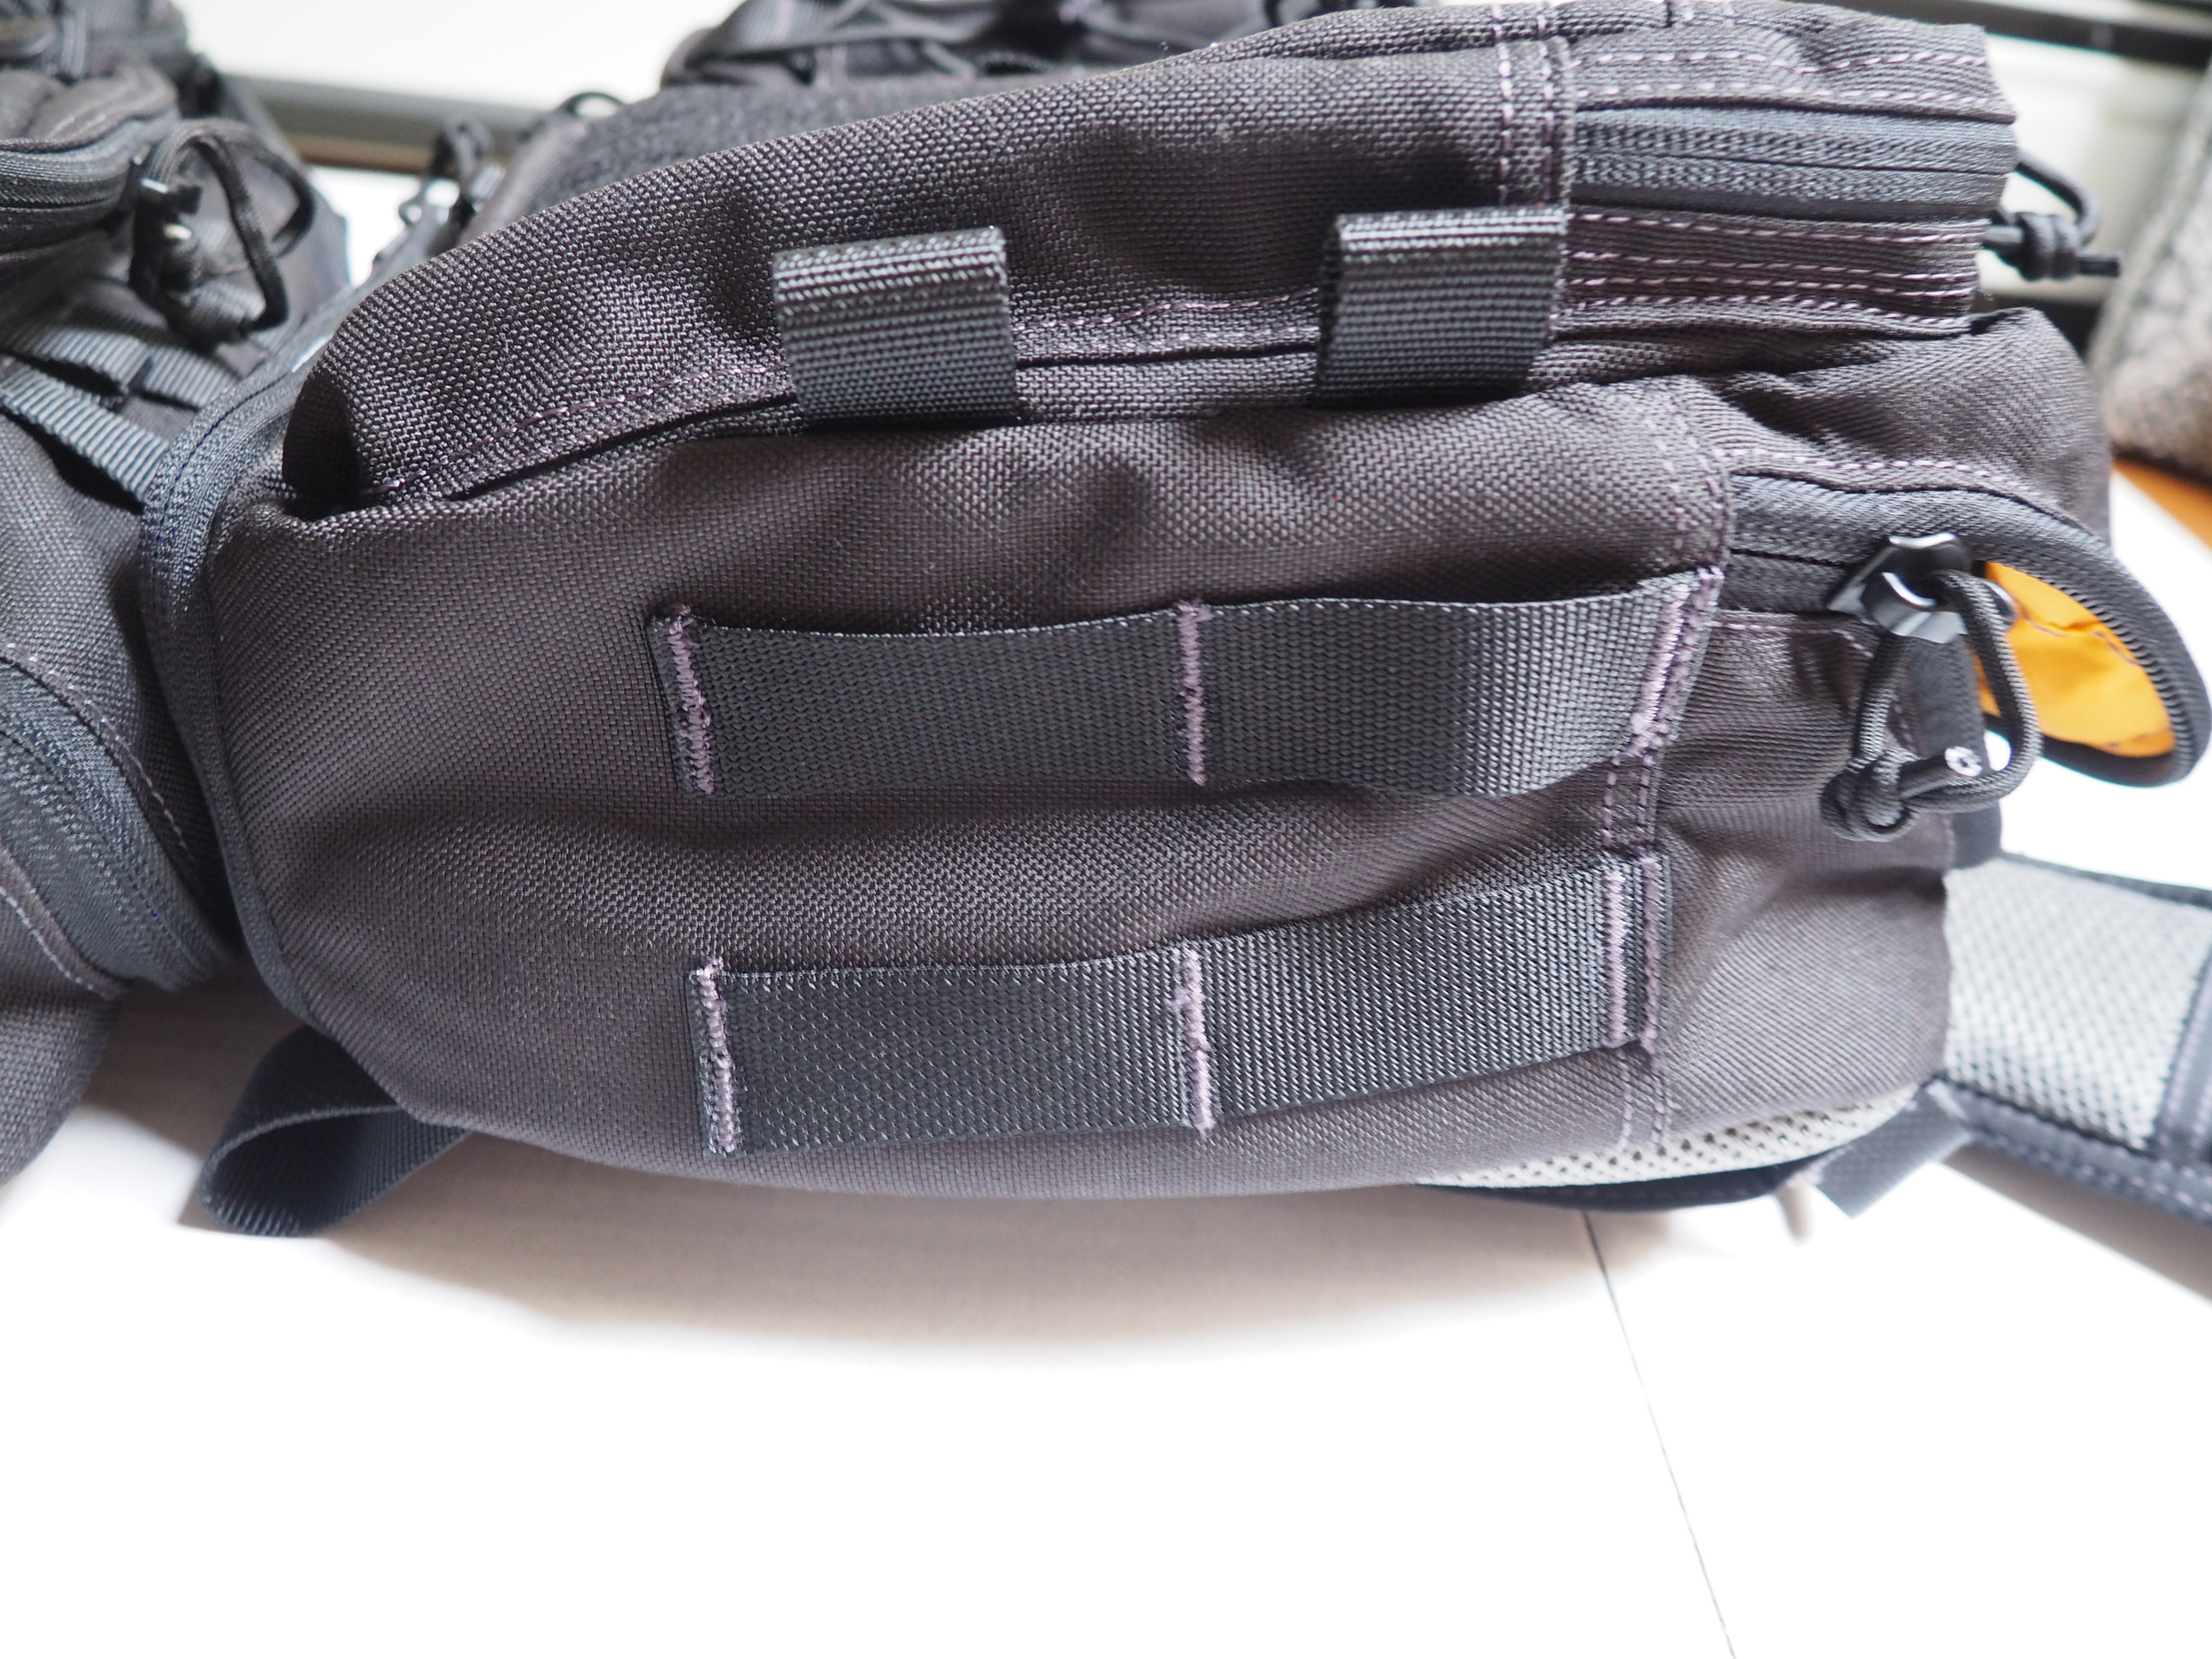 Vanquest Javelin 3 0 Vslinger Bag Review Pk Shiu 邵家麒